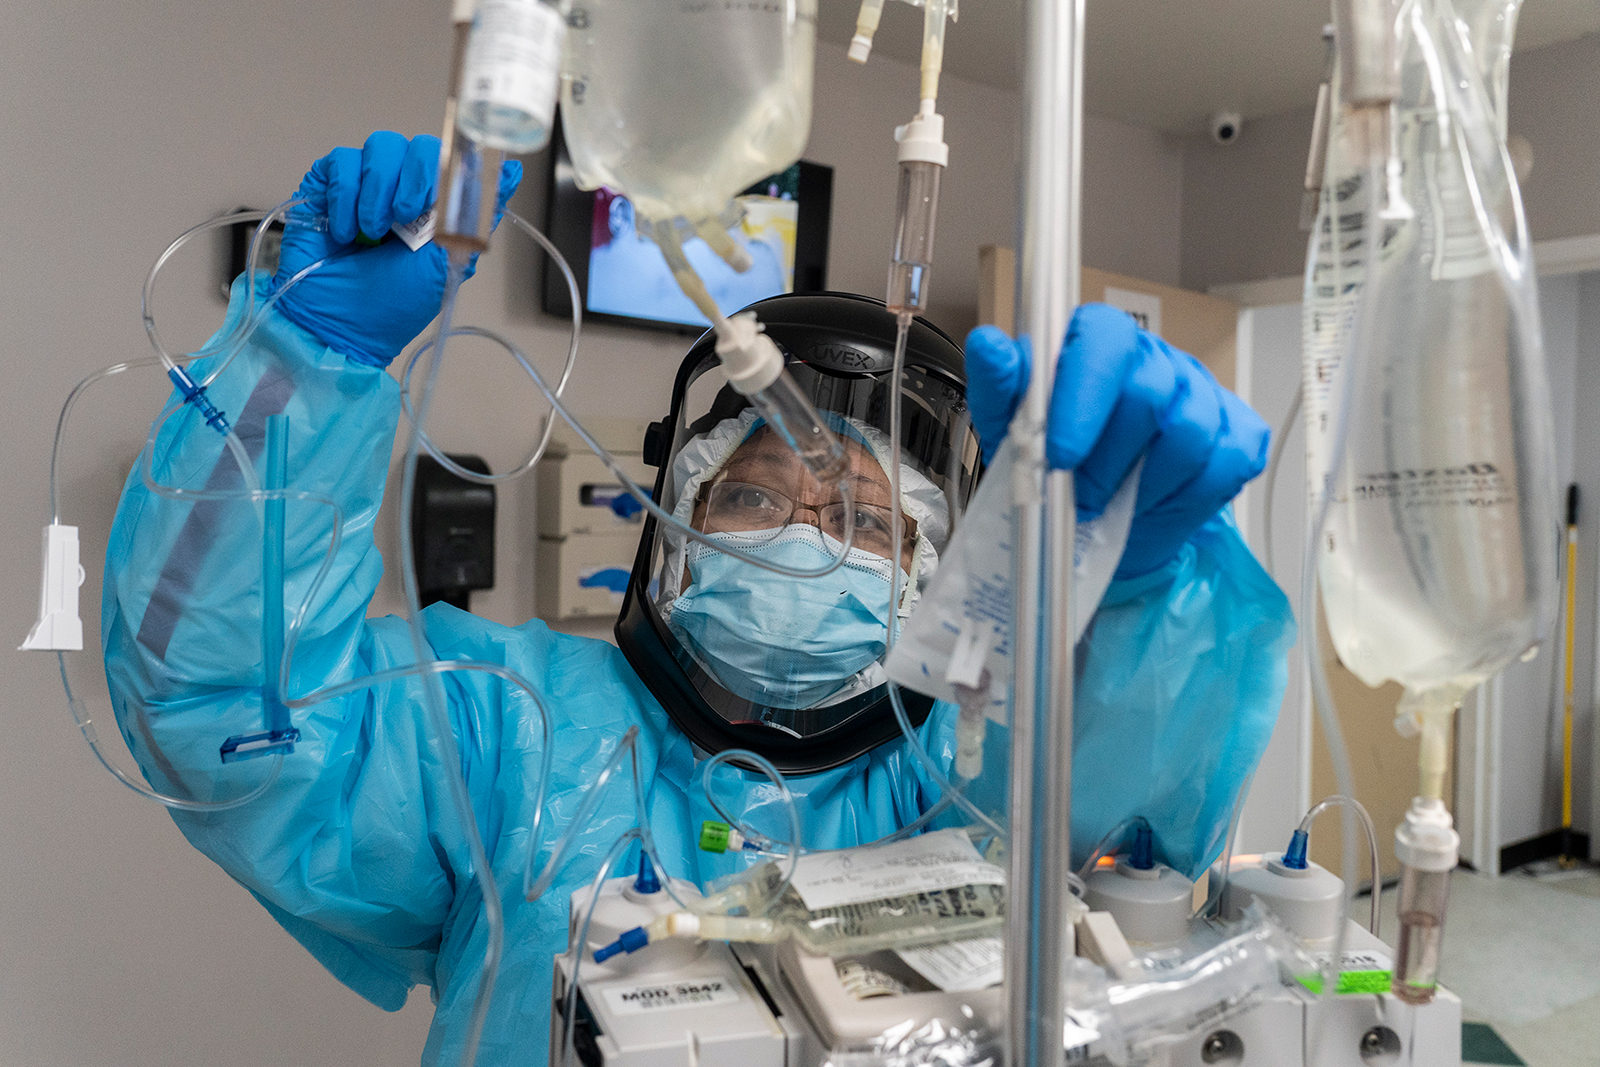 A medical staff member checks the IV drip for a patient in the Covid-19 intensive care unit during Thanksgiving at the United Memorial Medical Center on Nov. 26, in Houston, Texas.